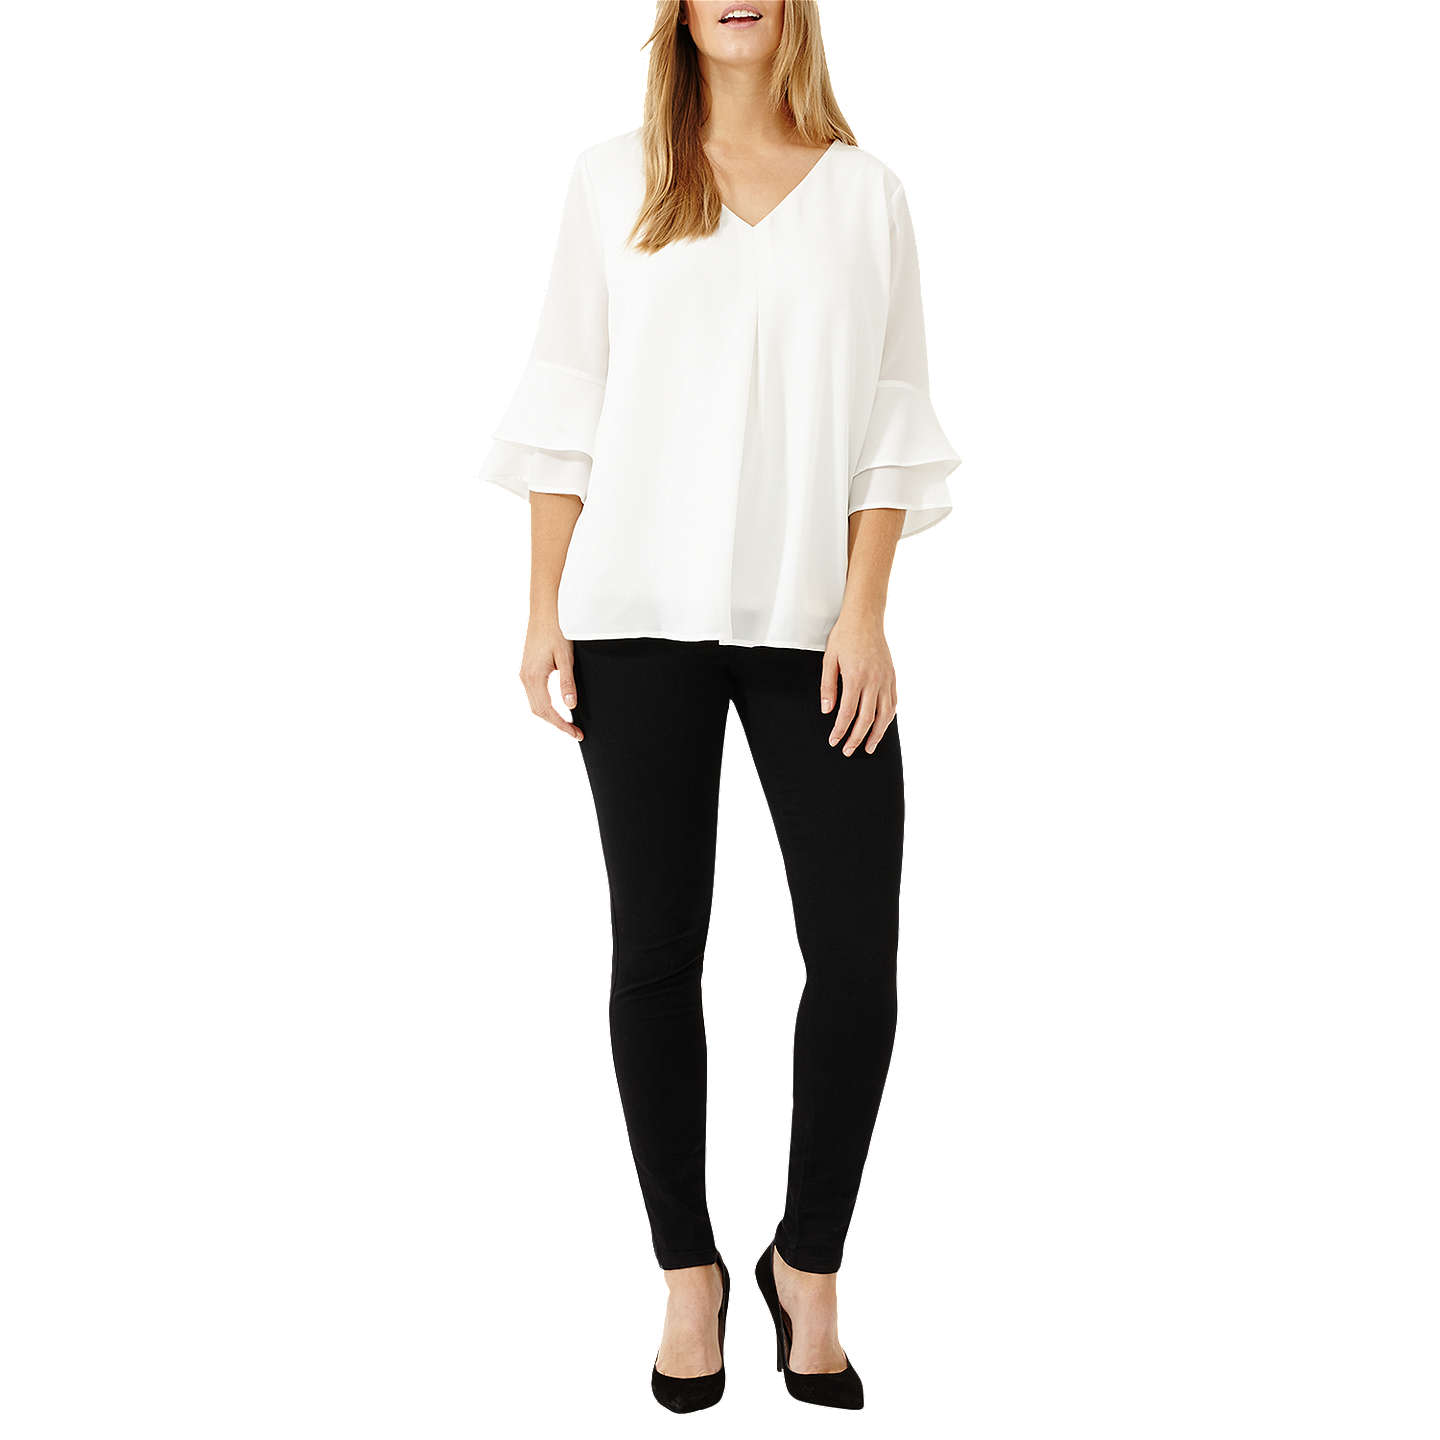 BuyStudio 8 Kelly Fluted Sleeve Top, Ivory, 12 Online at johnlewis.com